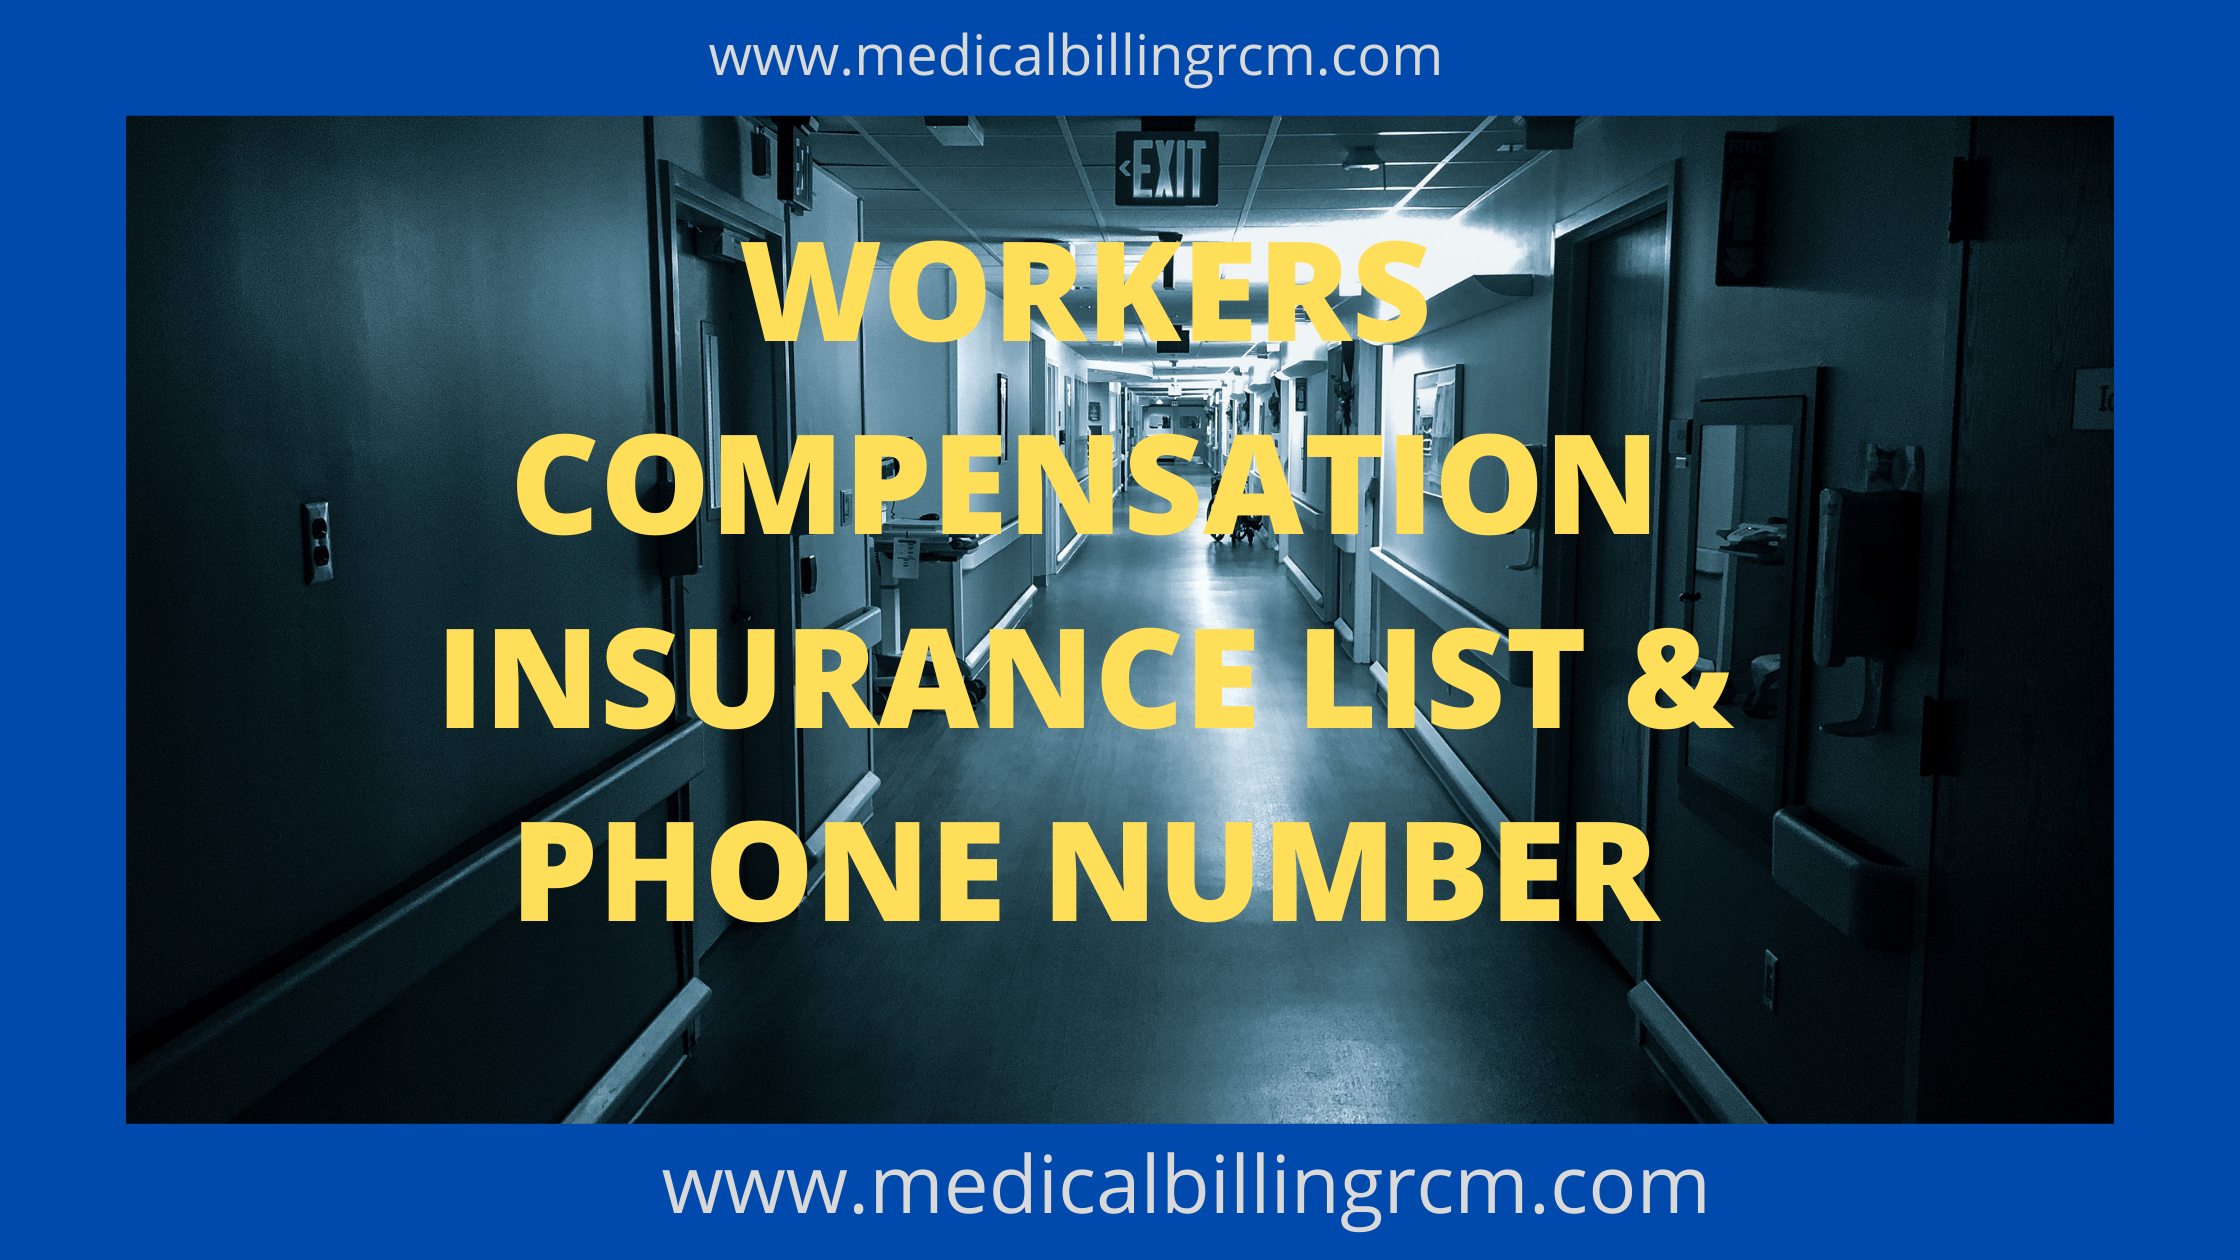 workers compensation insurance list and phone numbers